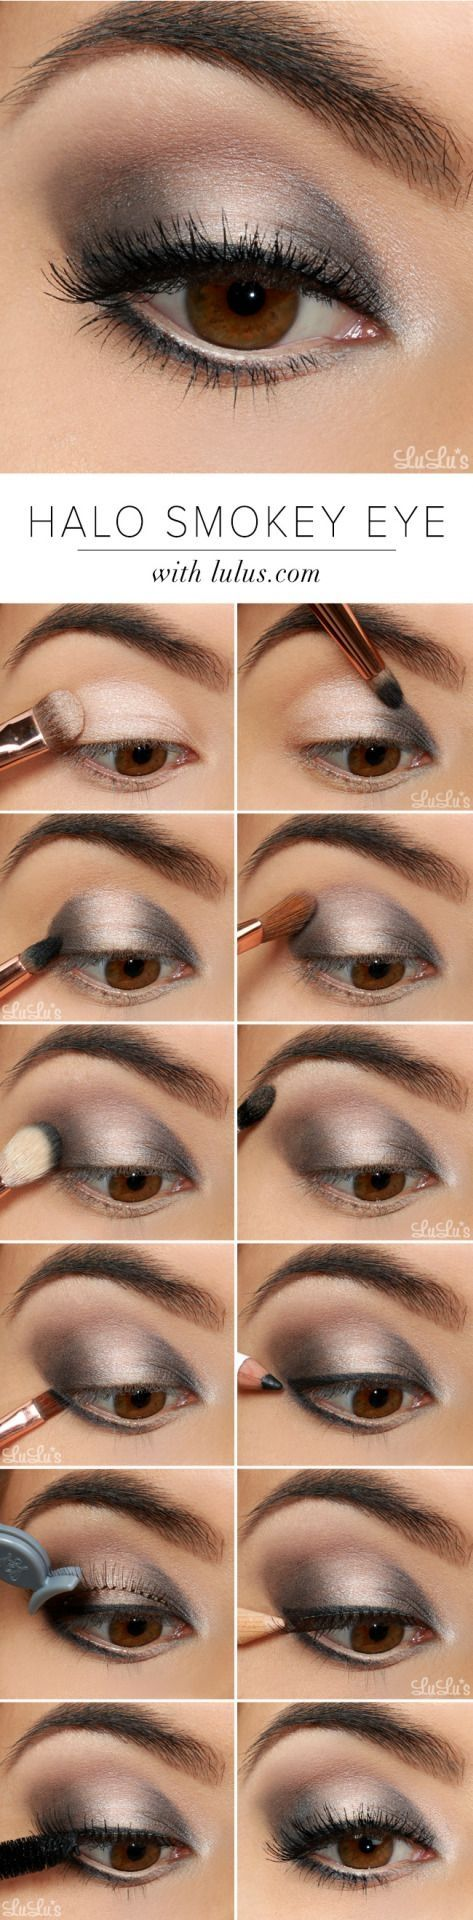 LuLu*s How-To: Halo Smokey Eye Shadow Tutorial by Faby Posadas